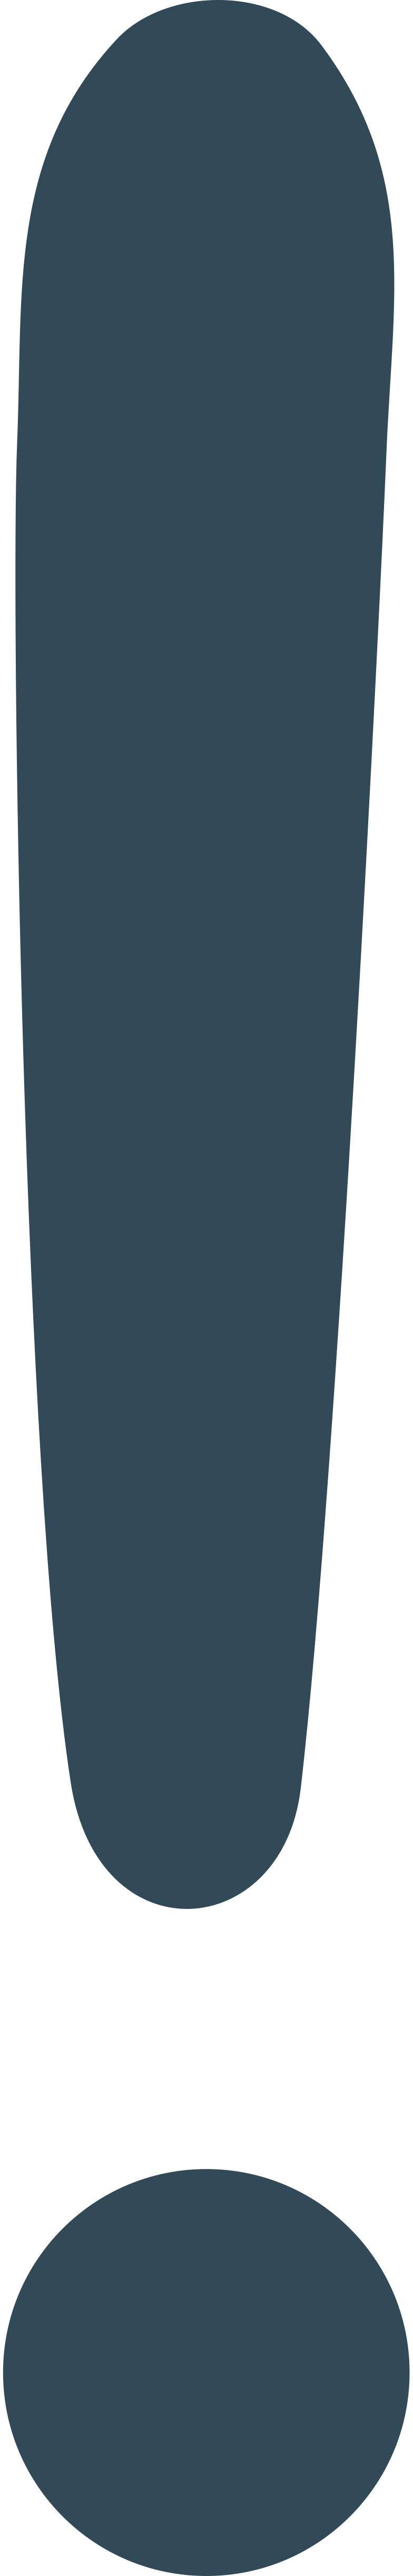 exclamation point  dark blue Clipart illustration in PNG, SVG